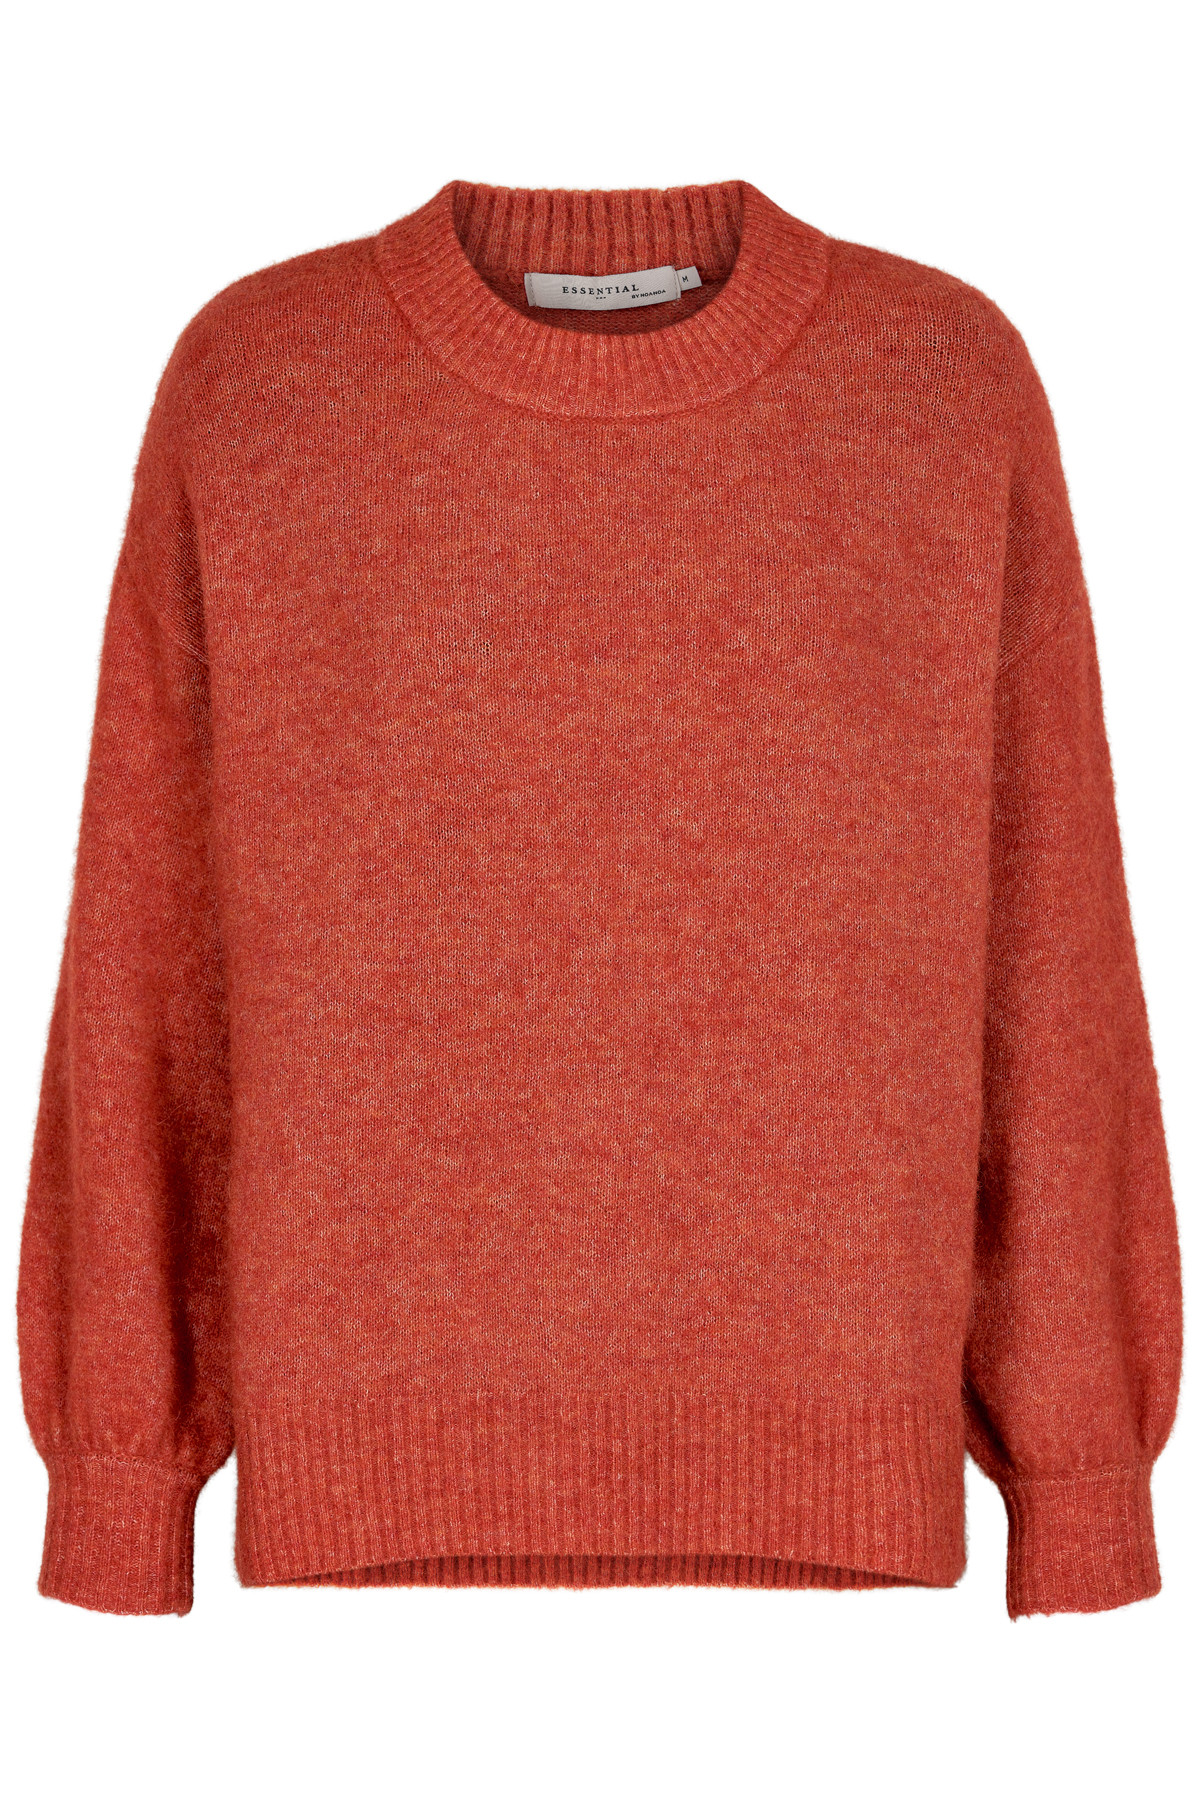 Image of   NOA NOA PULLOVER 1-9642-1 01068 (Red, XXS)